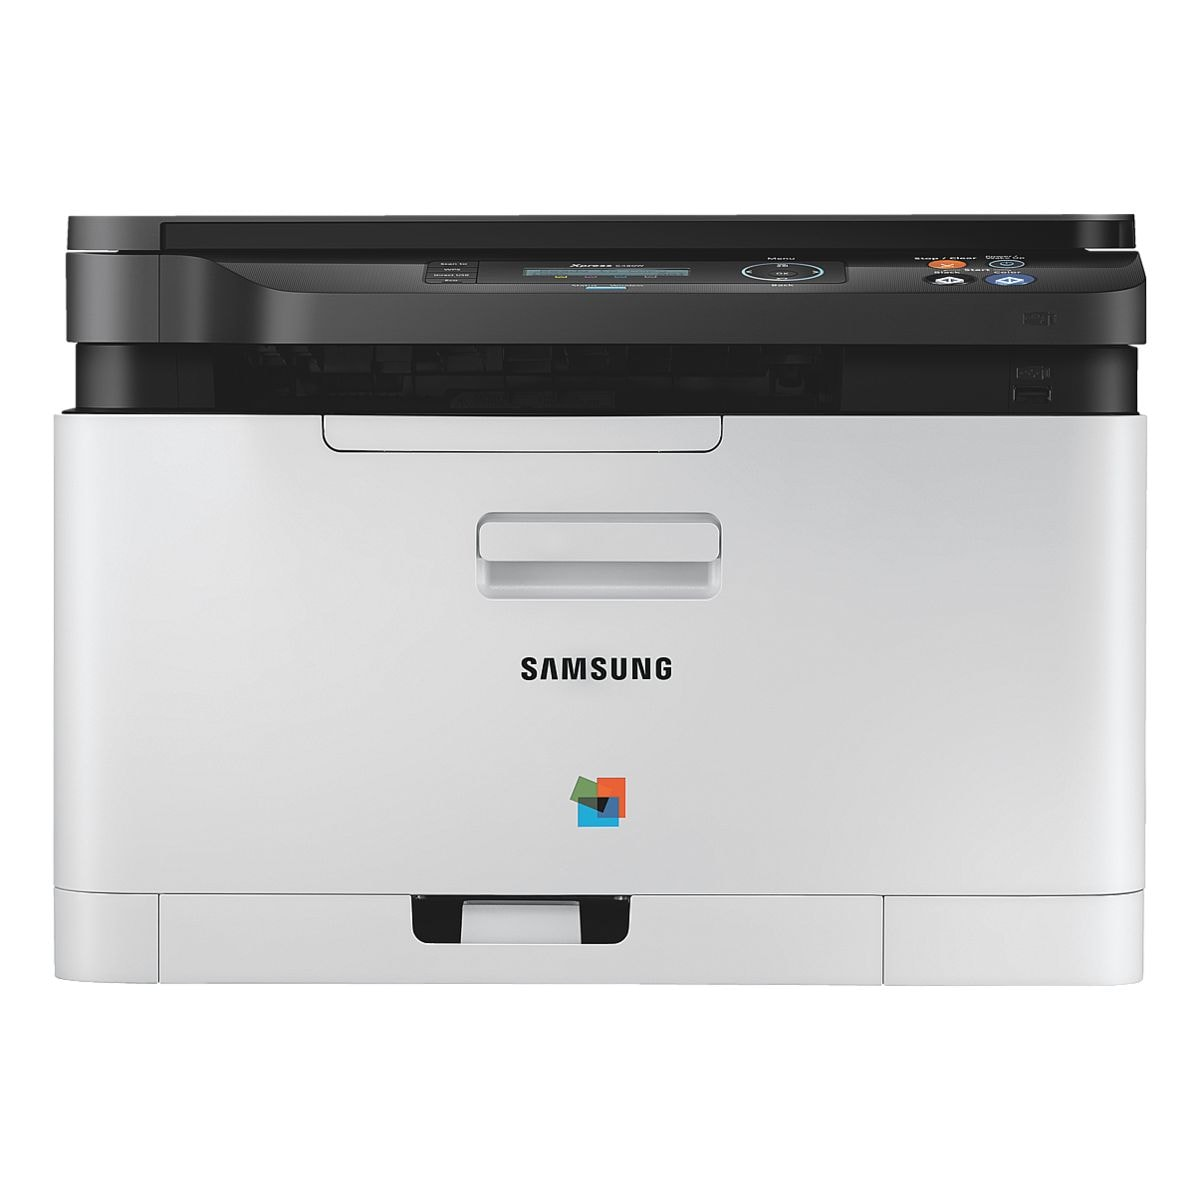 Samsung Multifunktionsdrucker Samsung Multifunktionsdrucker Xpress C480w Bei Otto